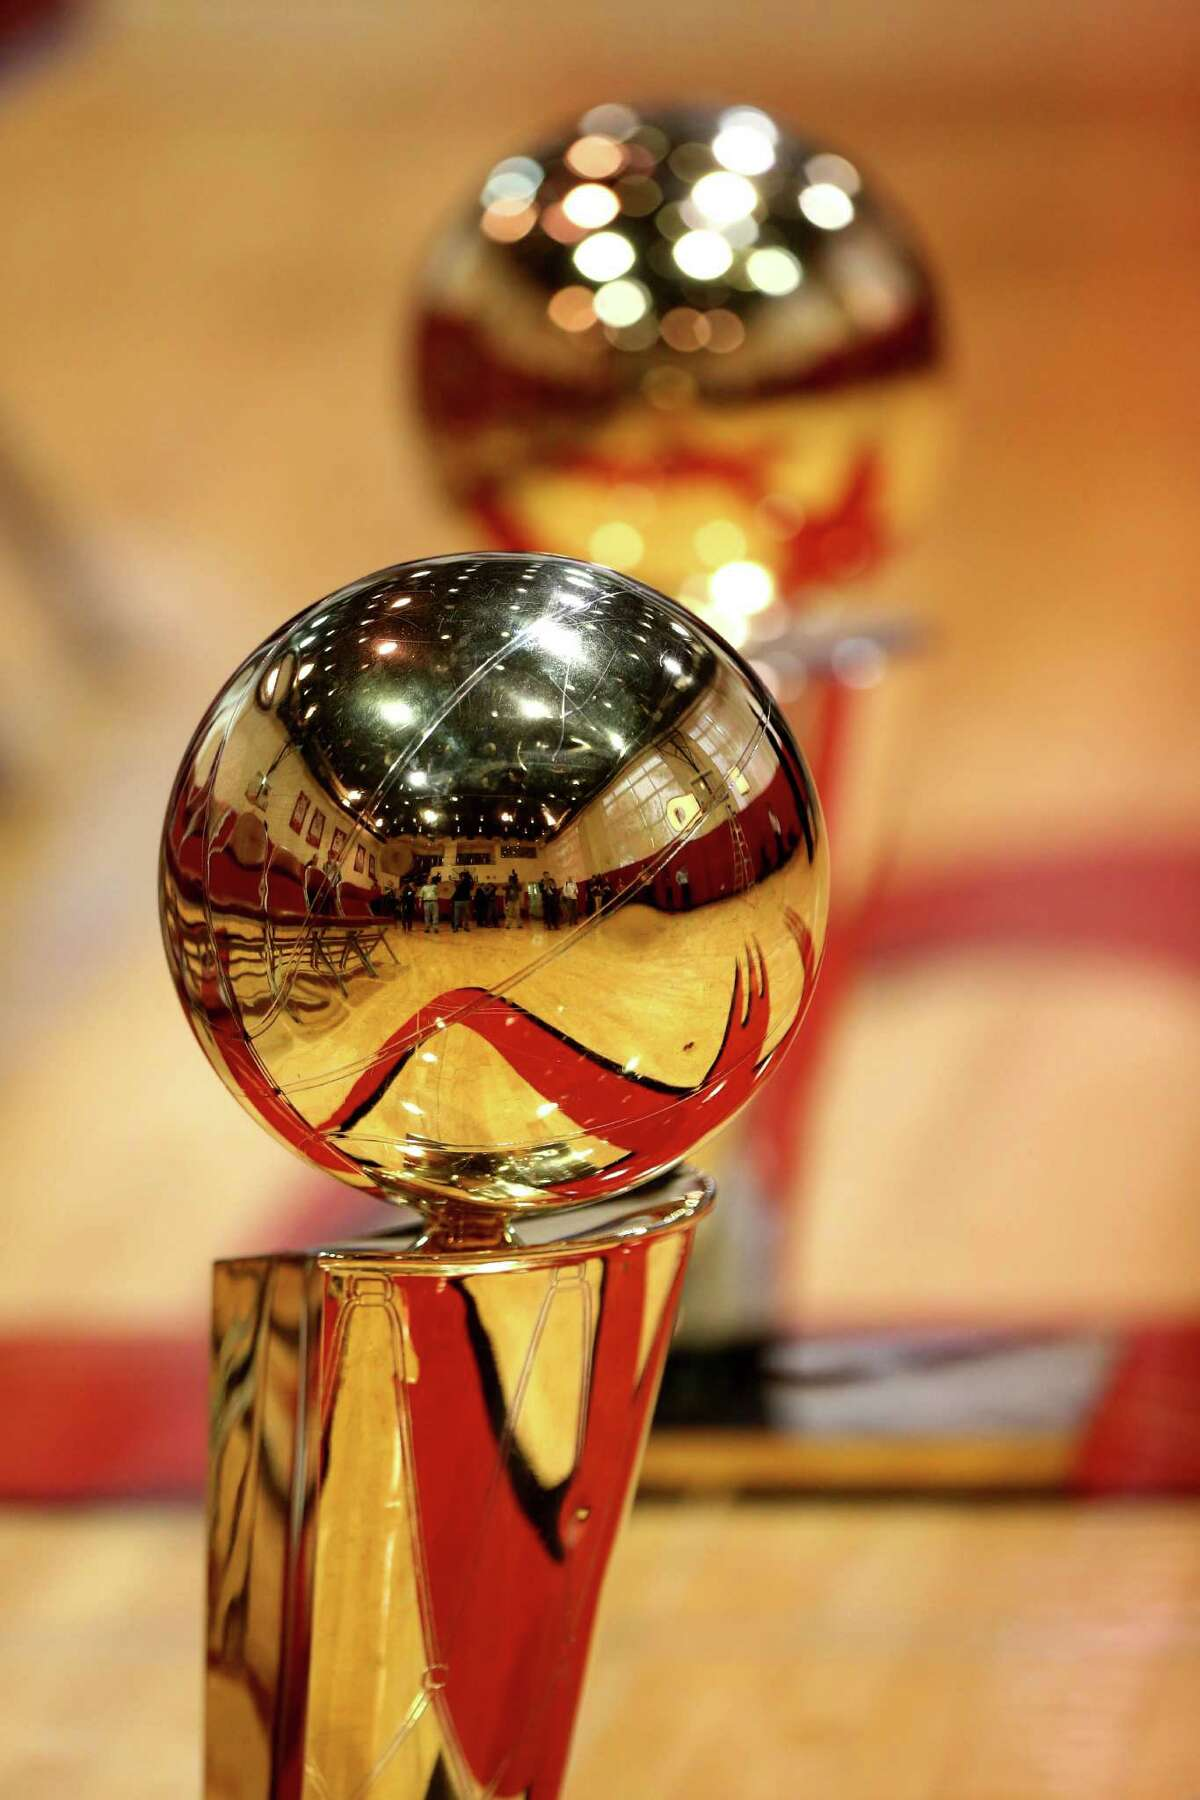 The NBA Championship trophies at a photo shoot honoring the Houston Rockets 20th anniversary of the 1993-94 and 1994-95 NBA back-to-back champion teams at the Toyota Center Thursday, March 19, 2015, in Houston, Texas.